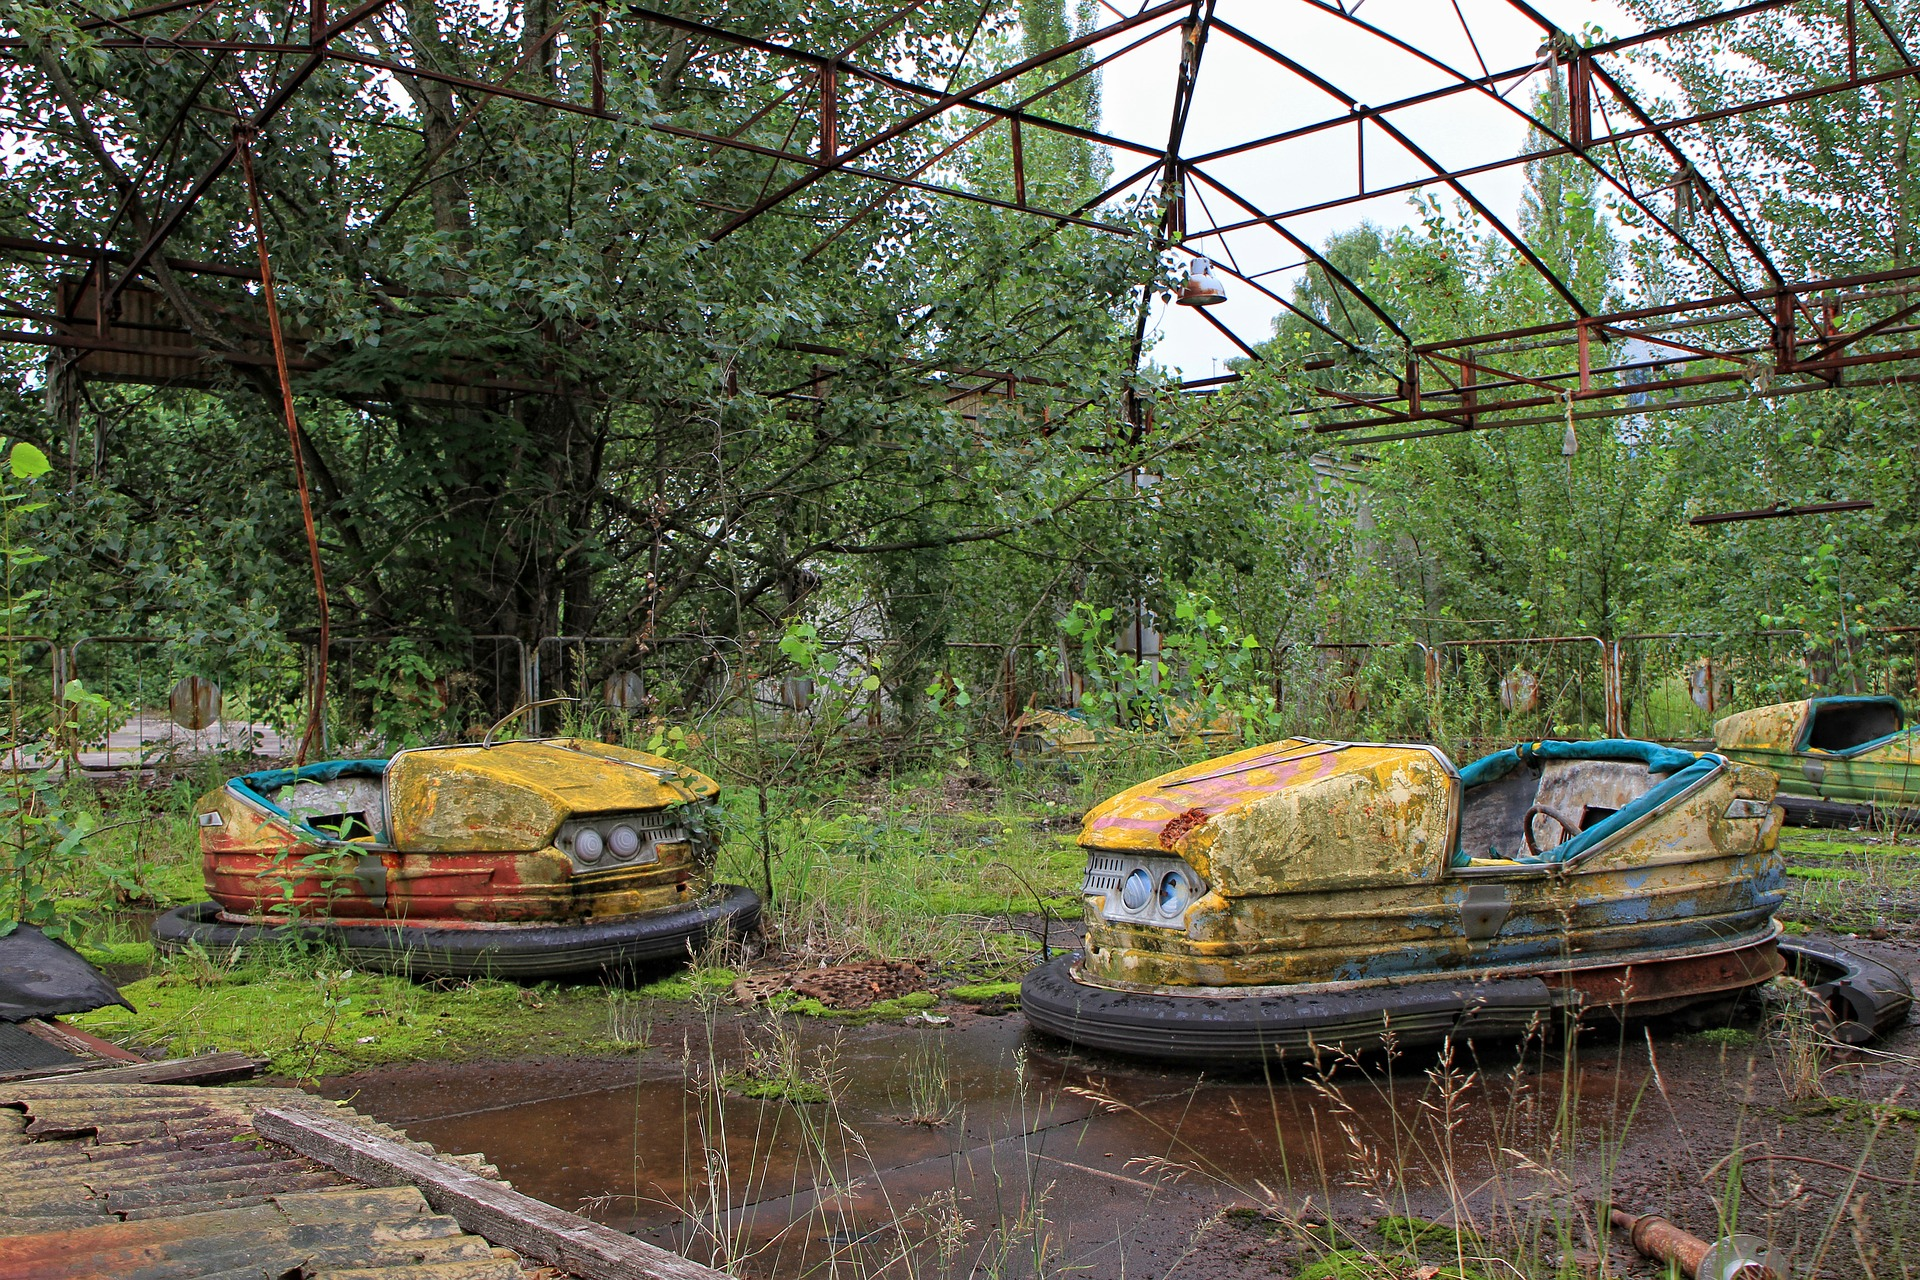 Pripyat: busted bumper cars